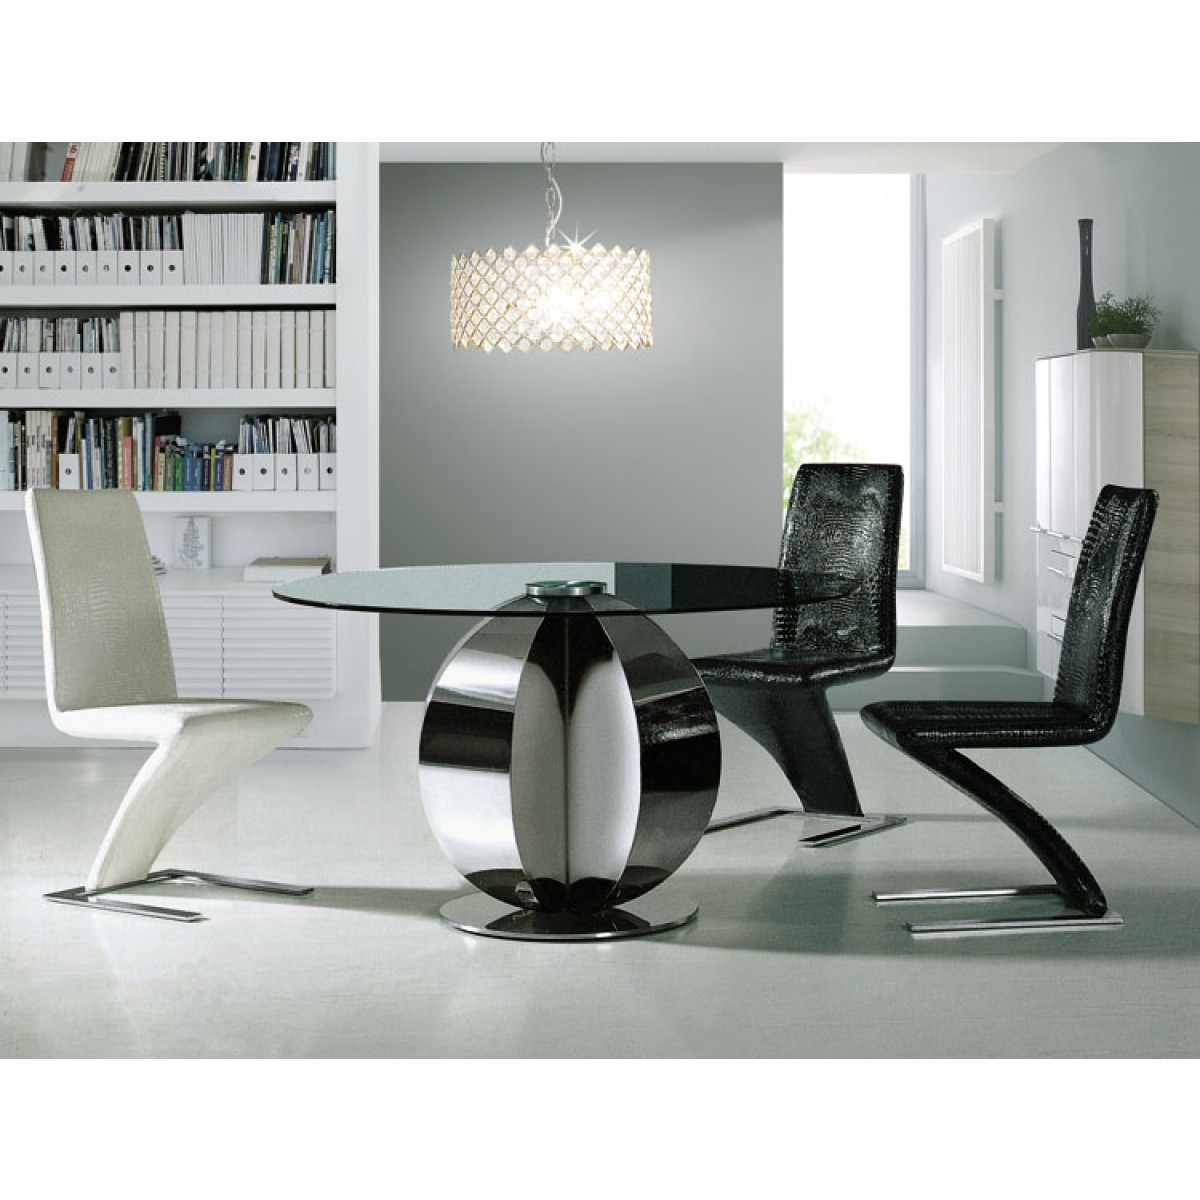 Table salle a manger ronde design for Table salle a manger design xxl